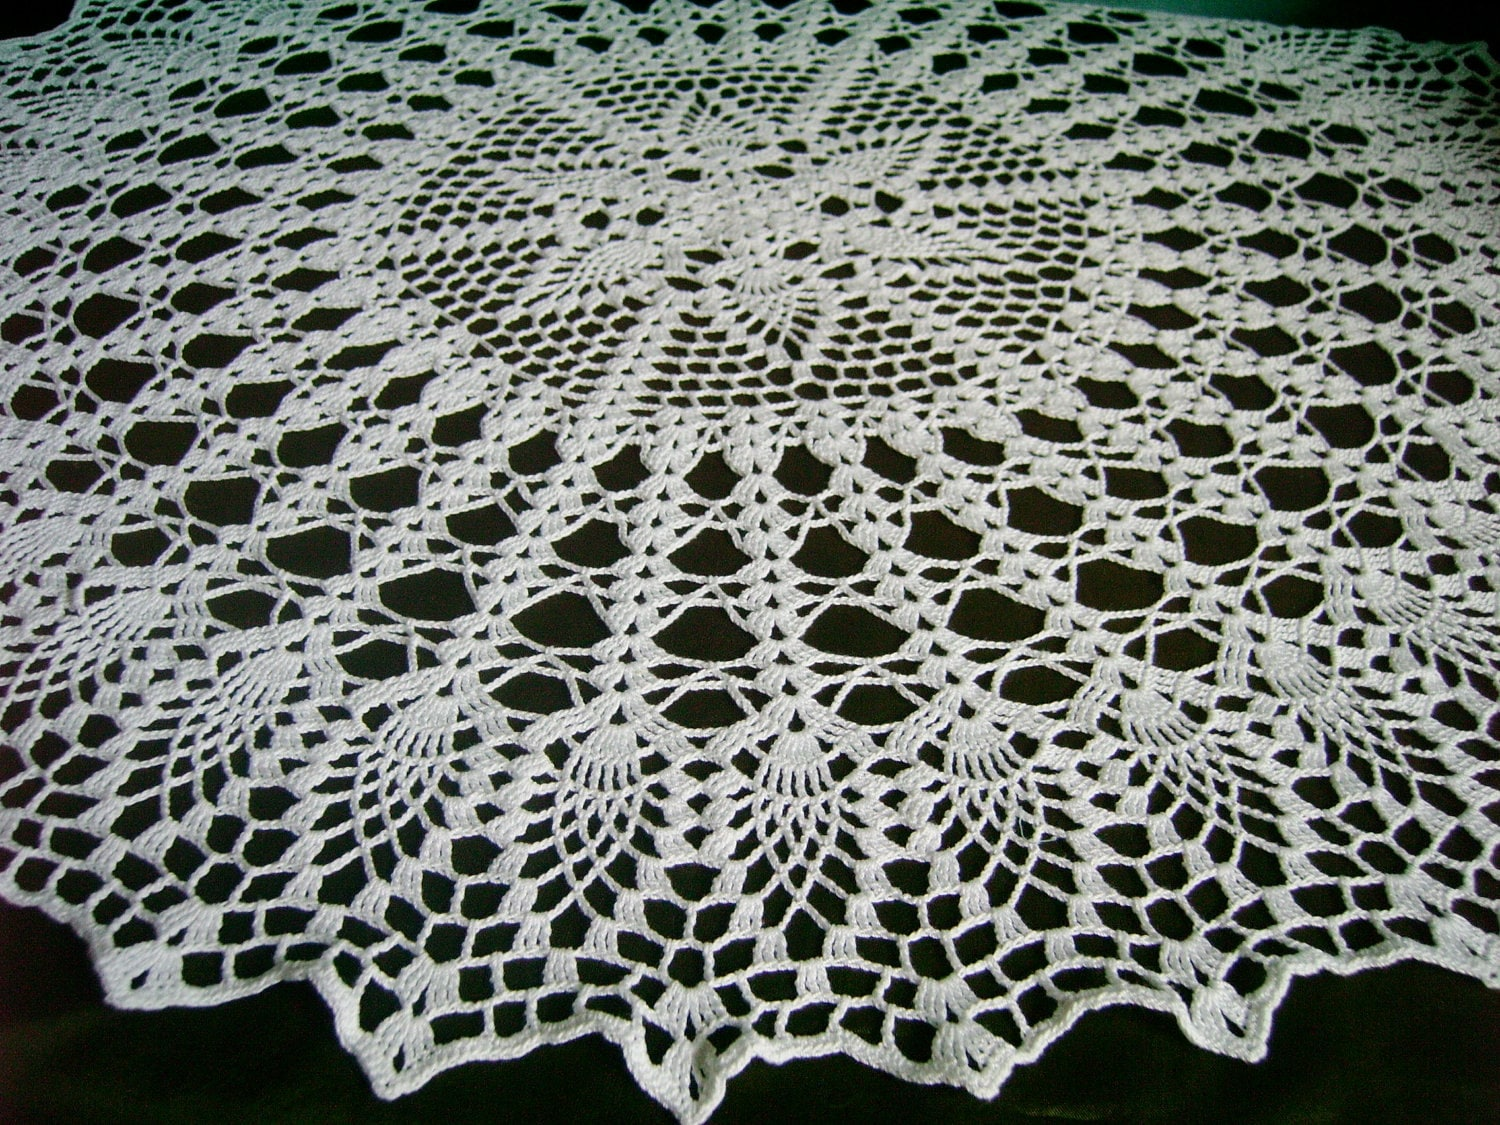 White Crochet Doily / Large Doily / Pineapple / Round 28